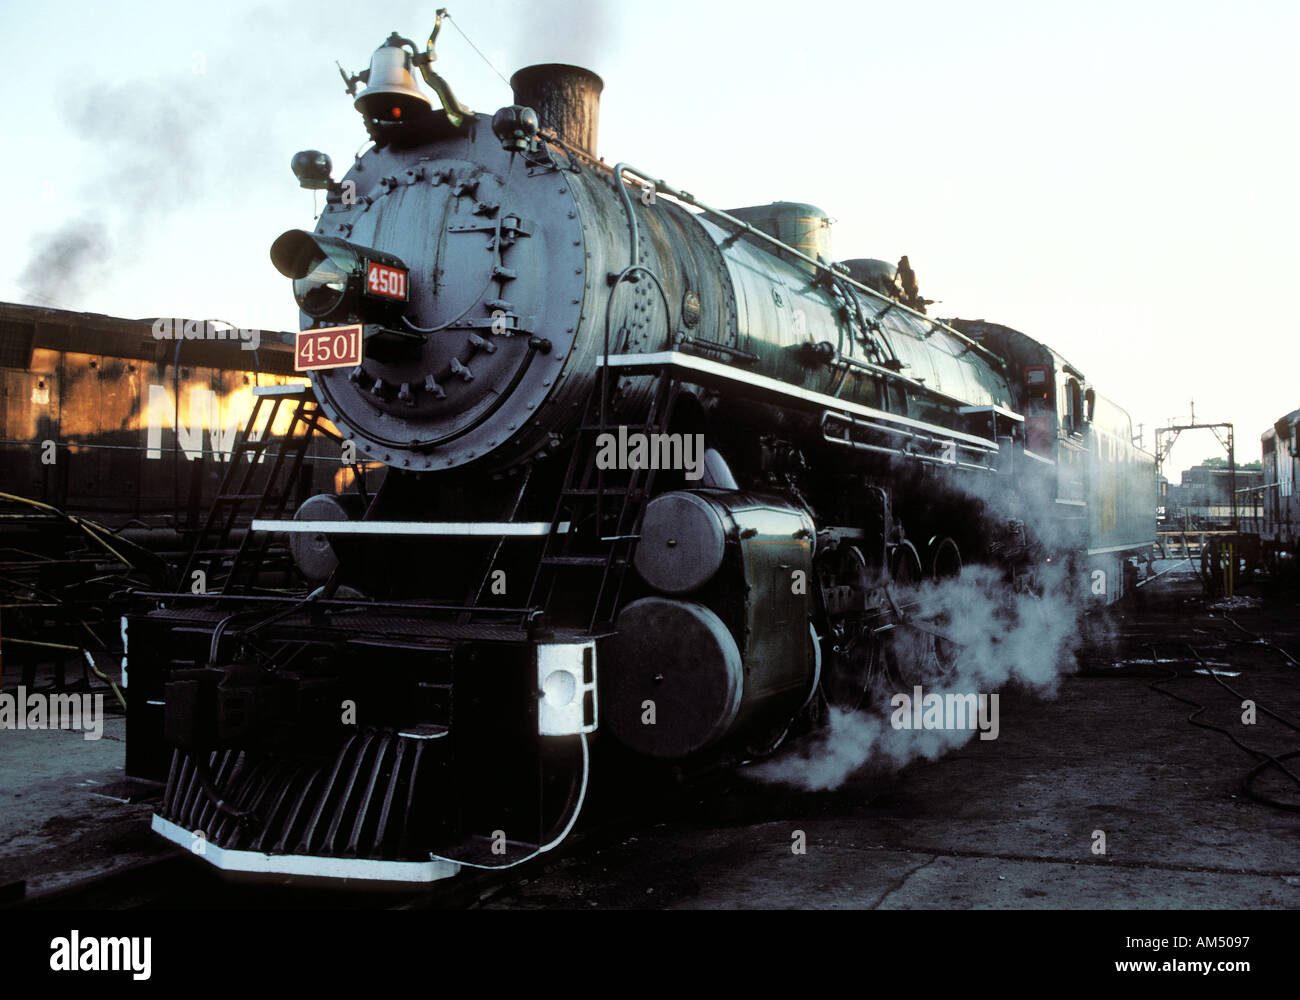 old antique steam train - Stock Image